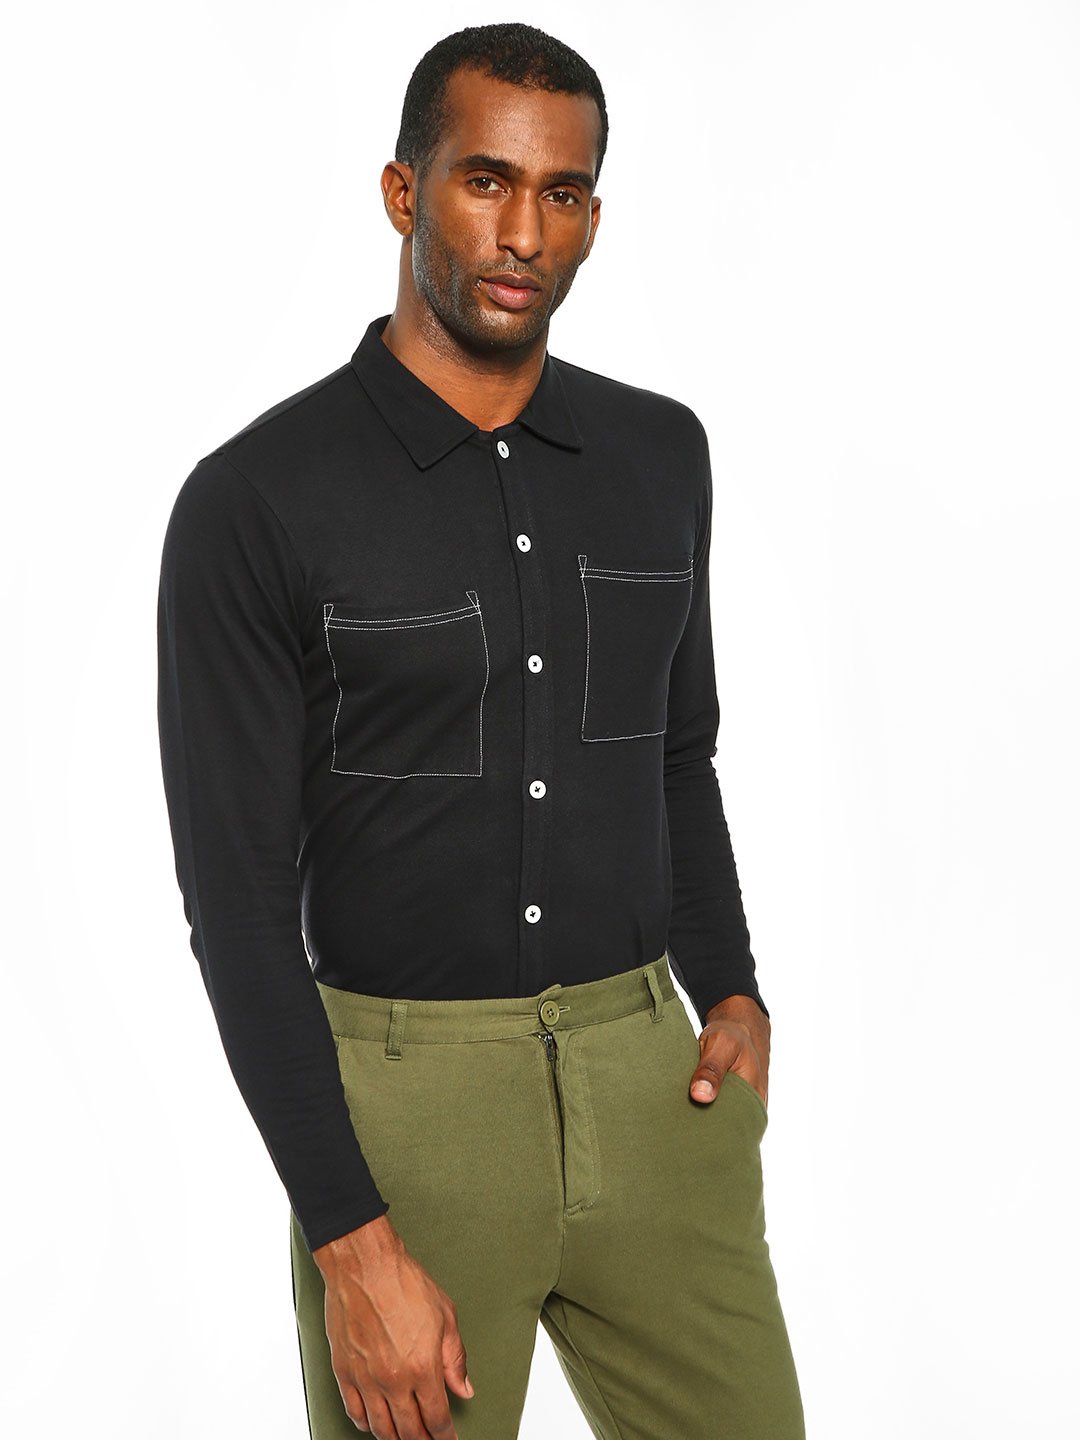 Garcon Black Pique Patch Pocket Shirt 1